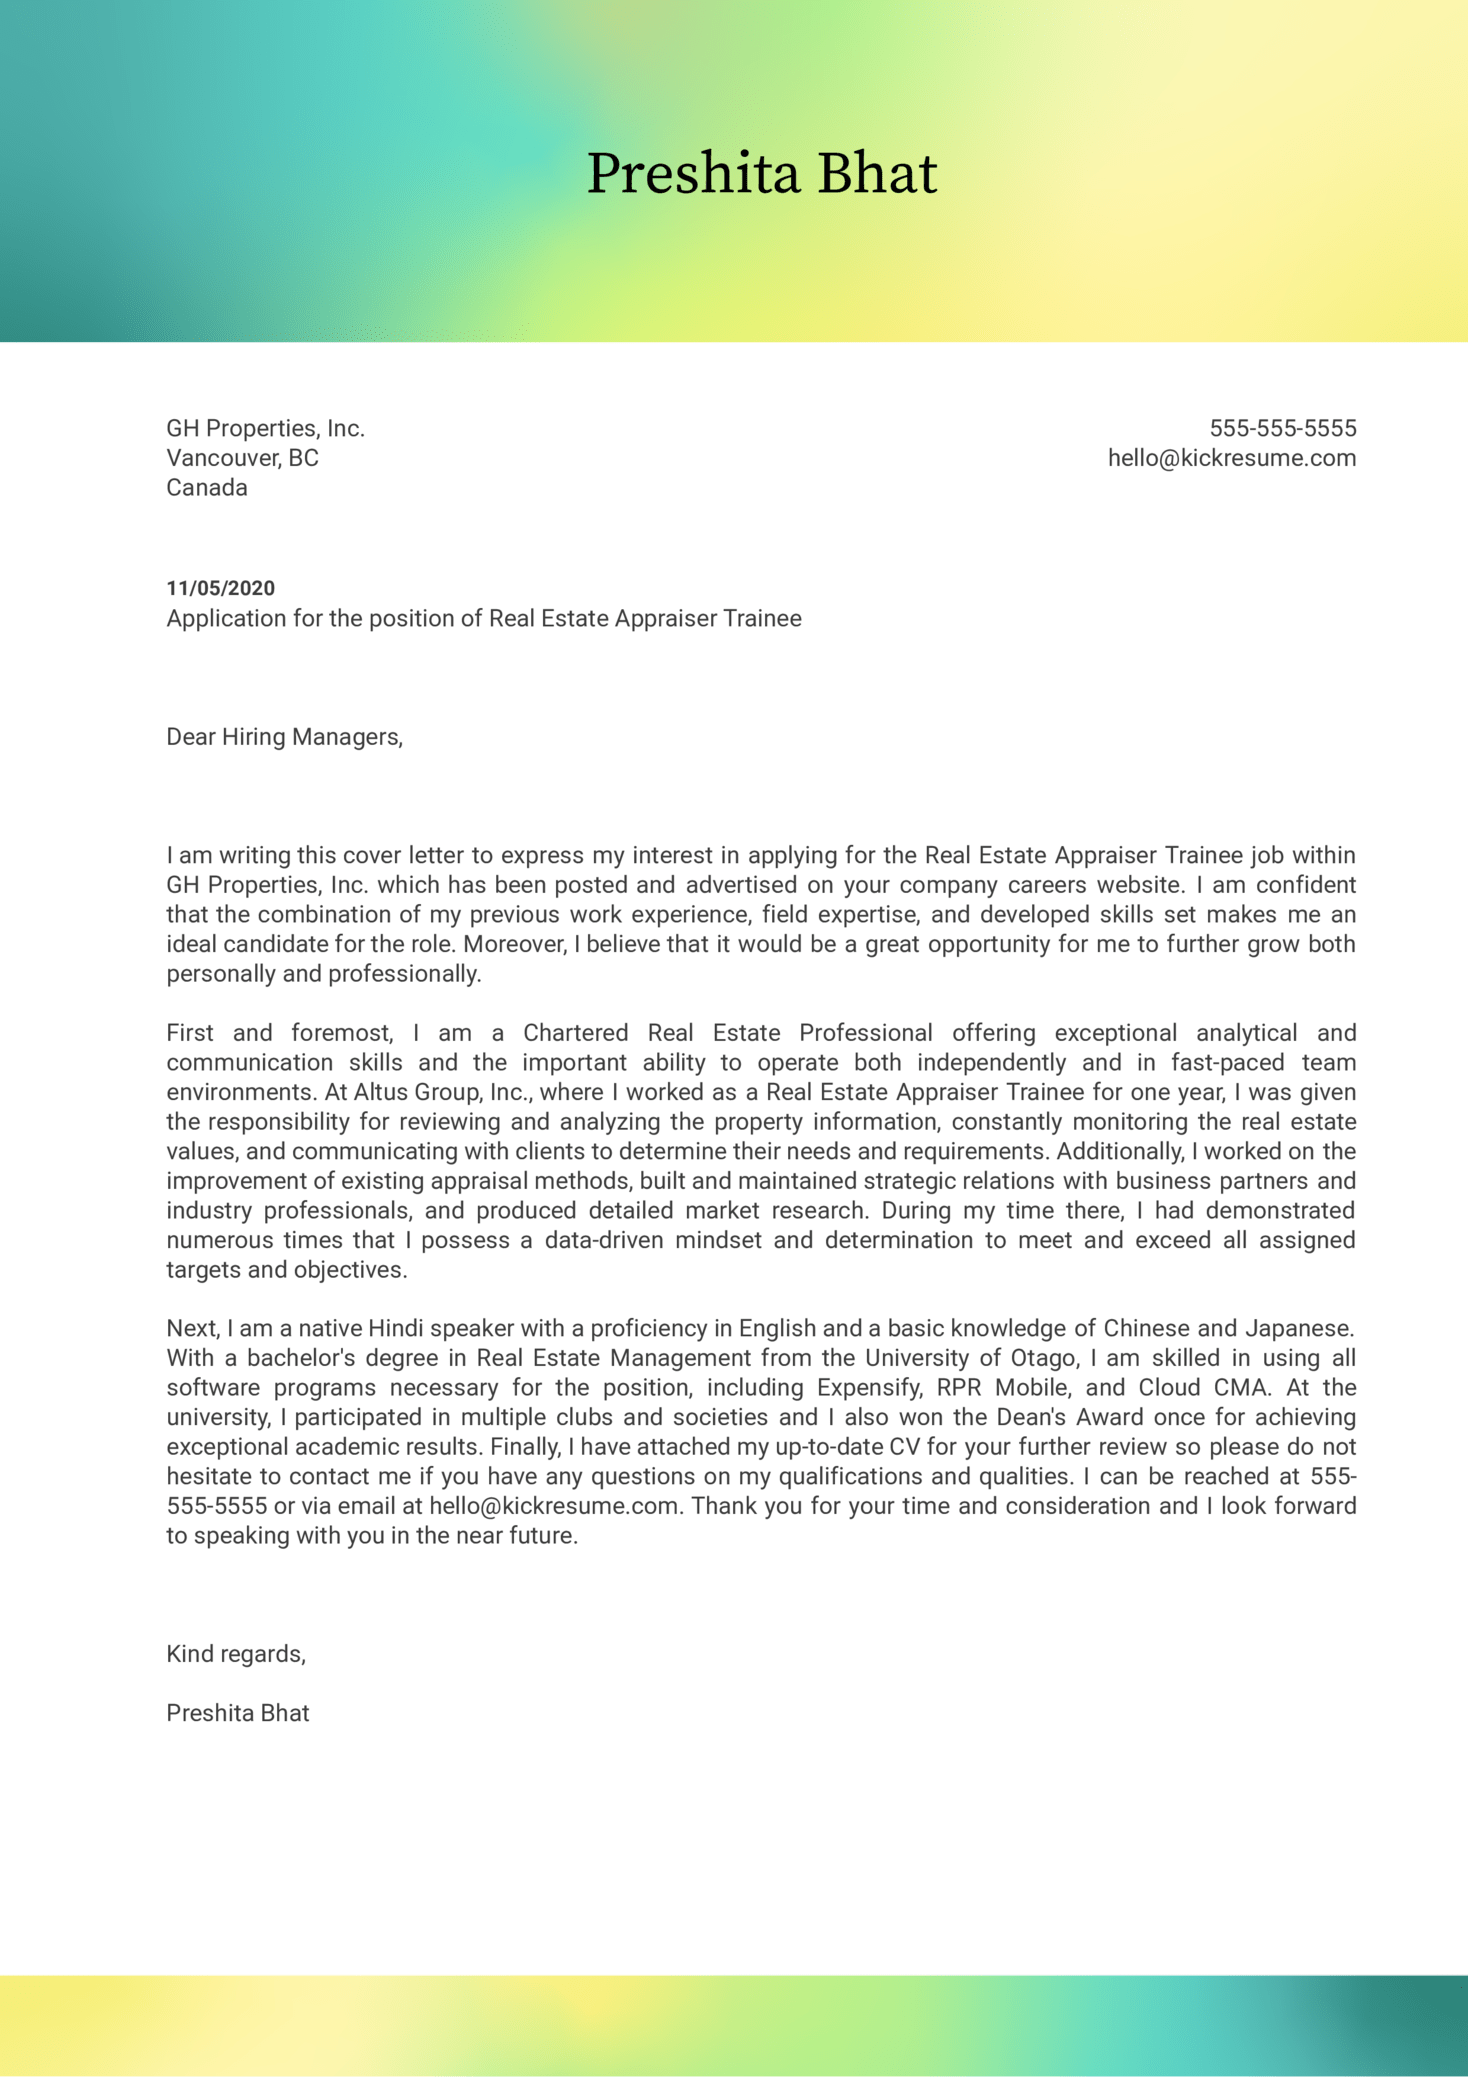 Real Estate Appraiser Trainee Cover Letter Example